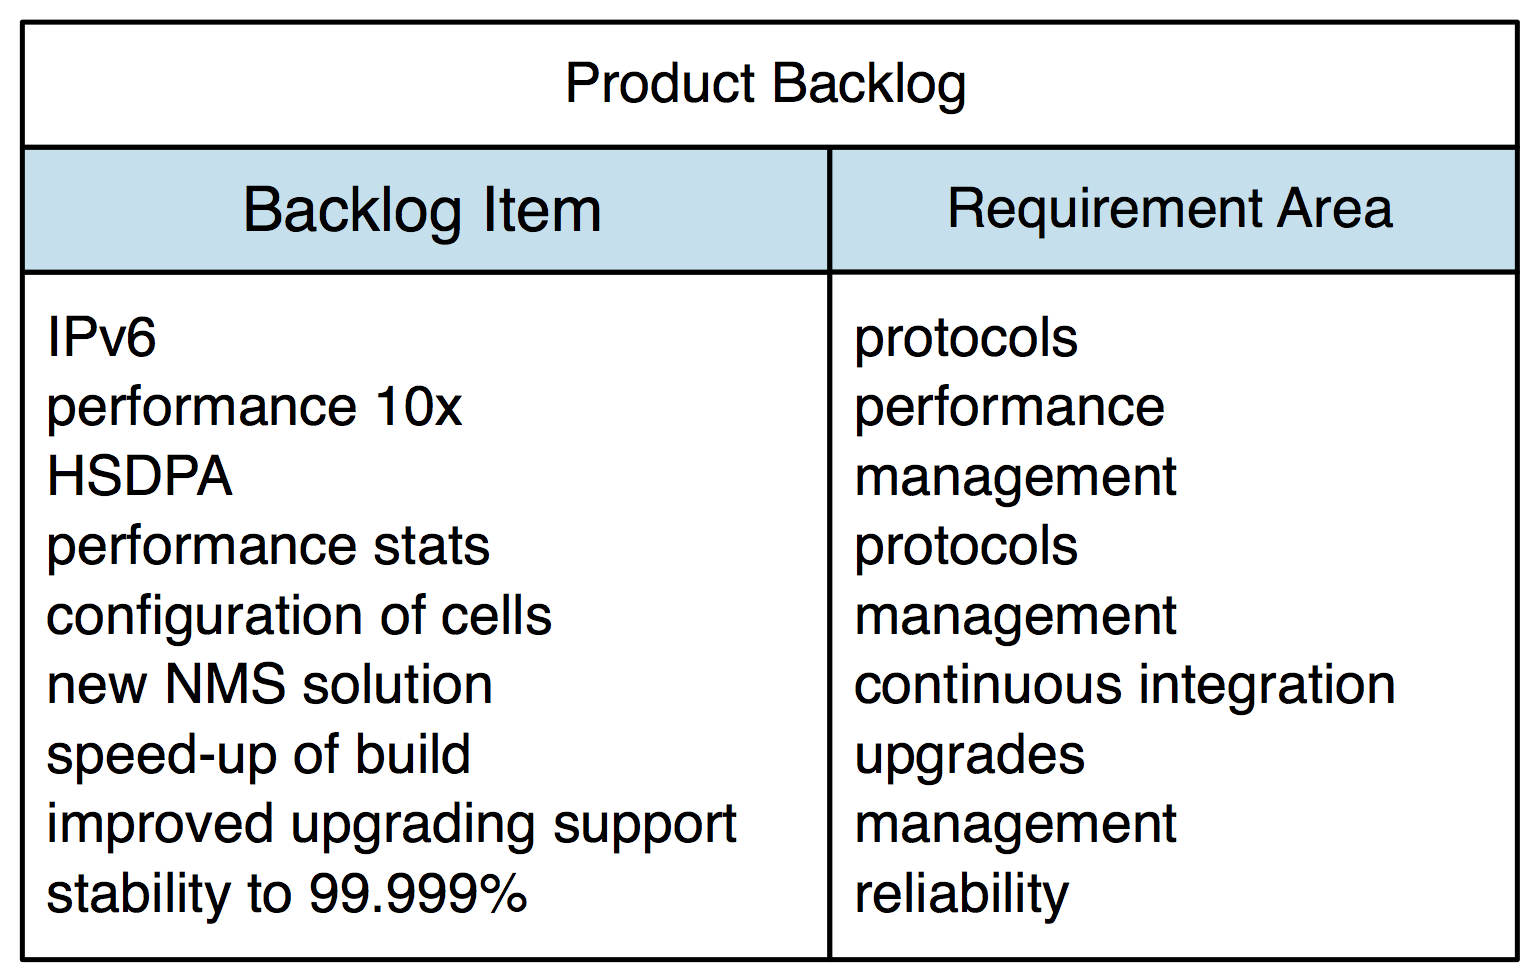 product-backlog-with-requirement-areas.png